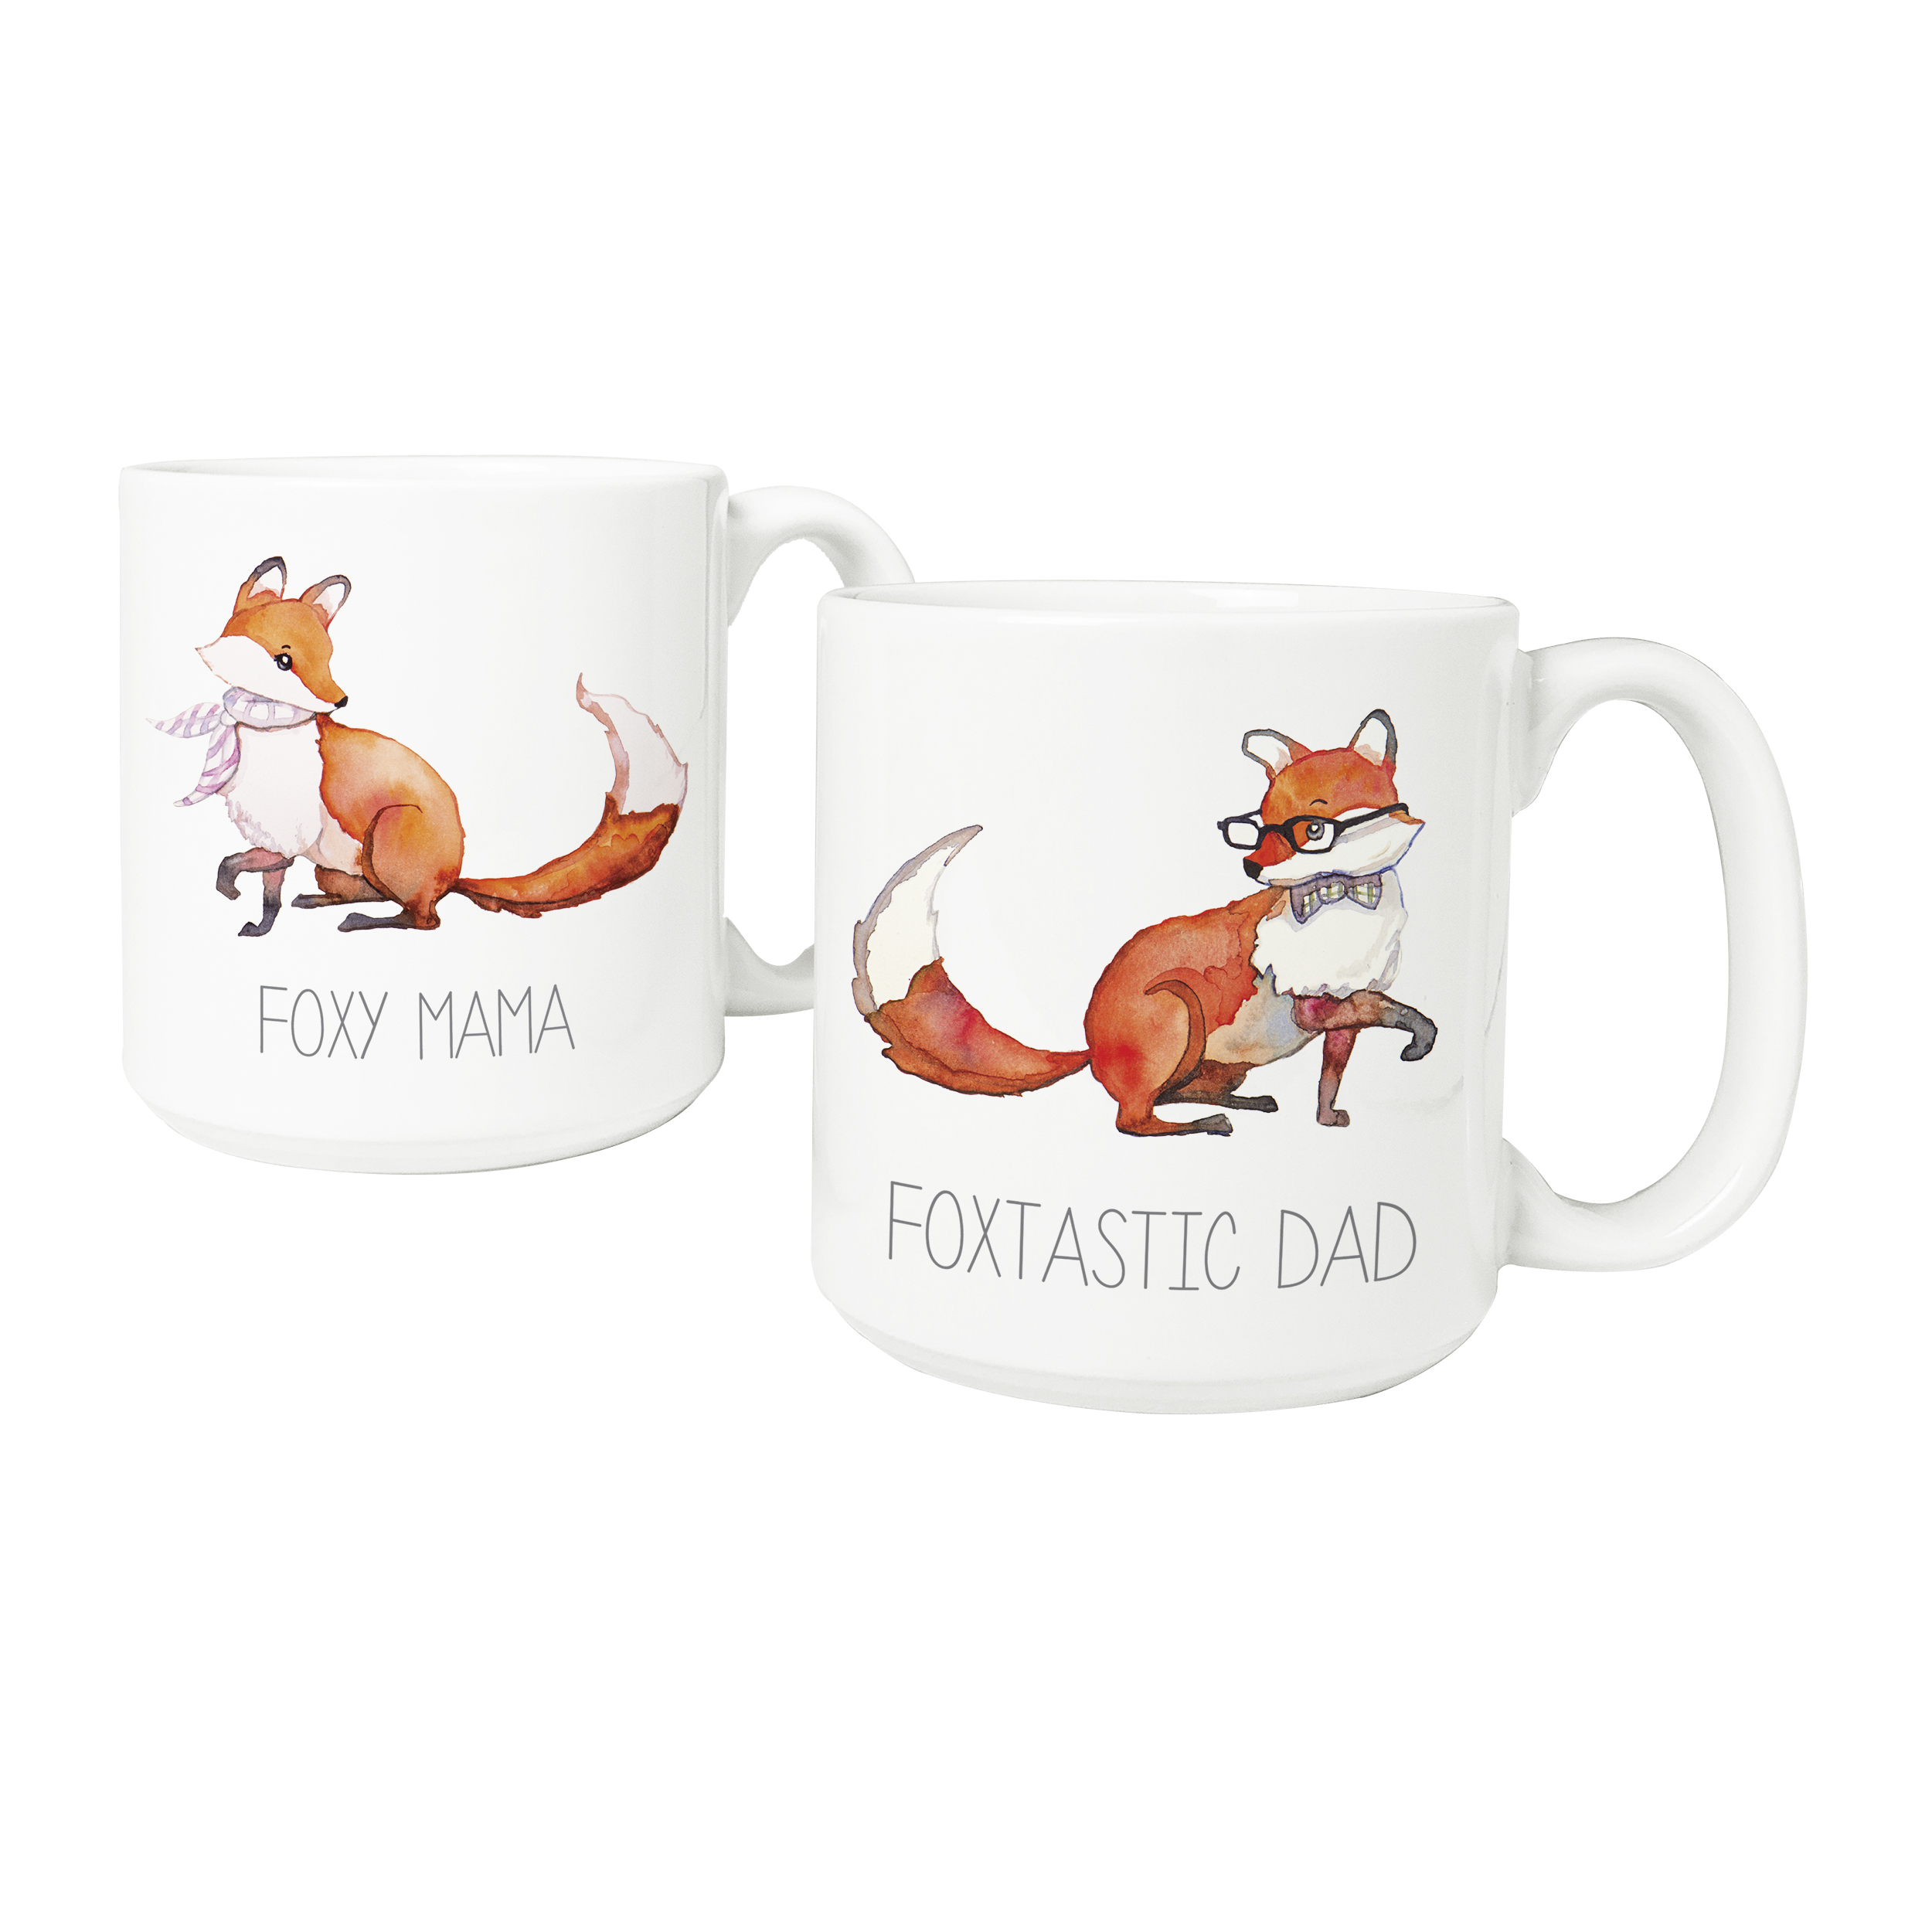 Cathys Concepts MF-3900FOX 20 oz Foxtastic Dad & Foxy Mama Coffee Mugs Large - Set of 2 CACO2909